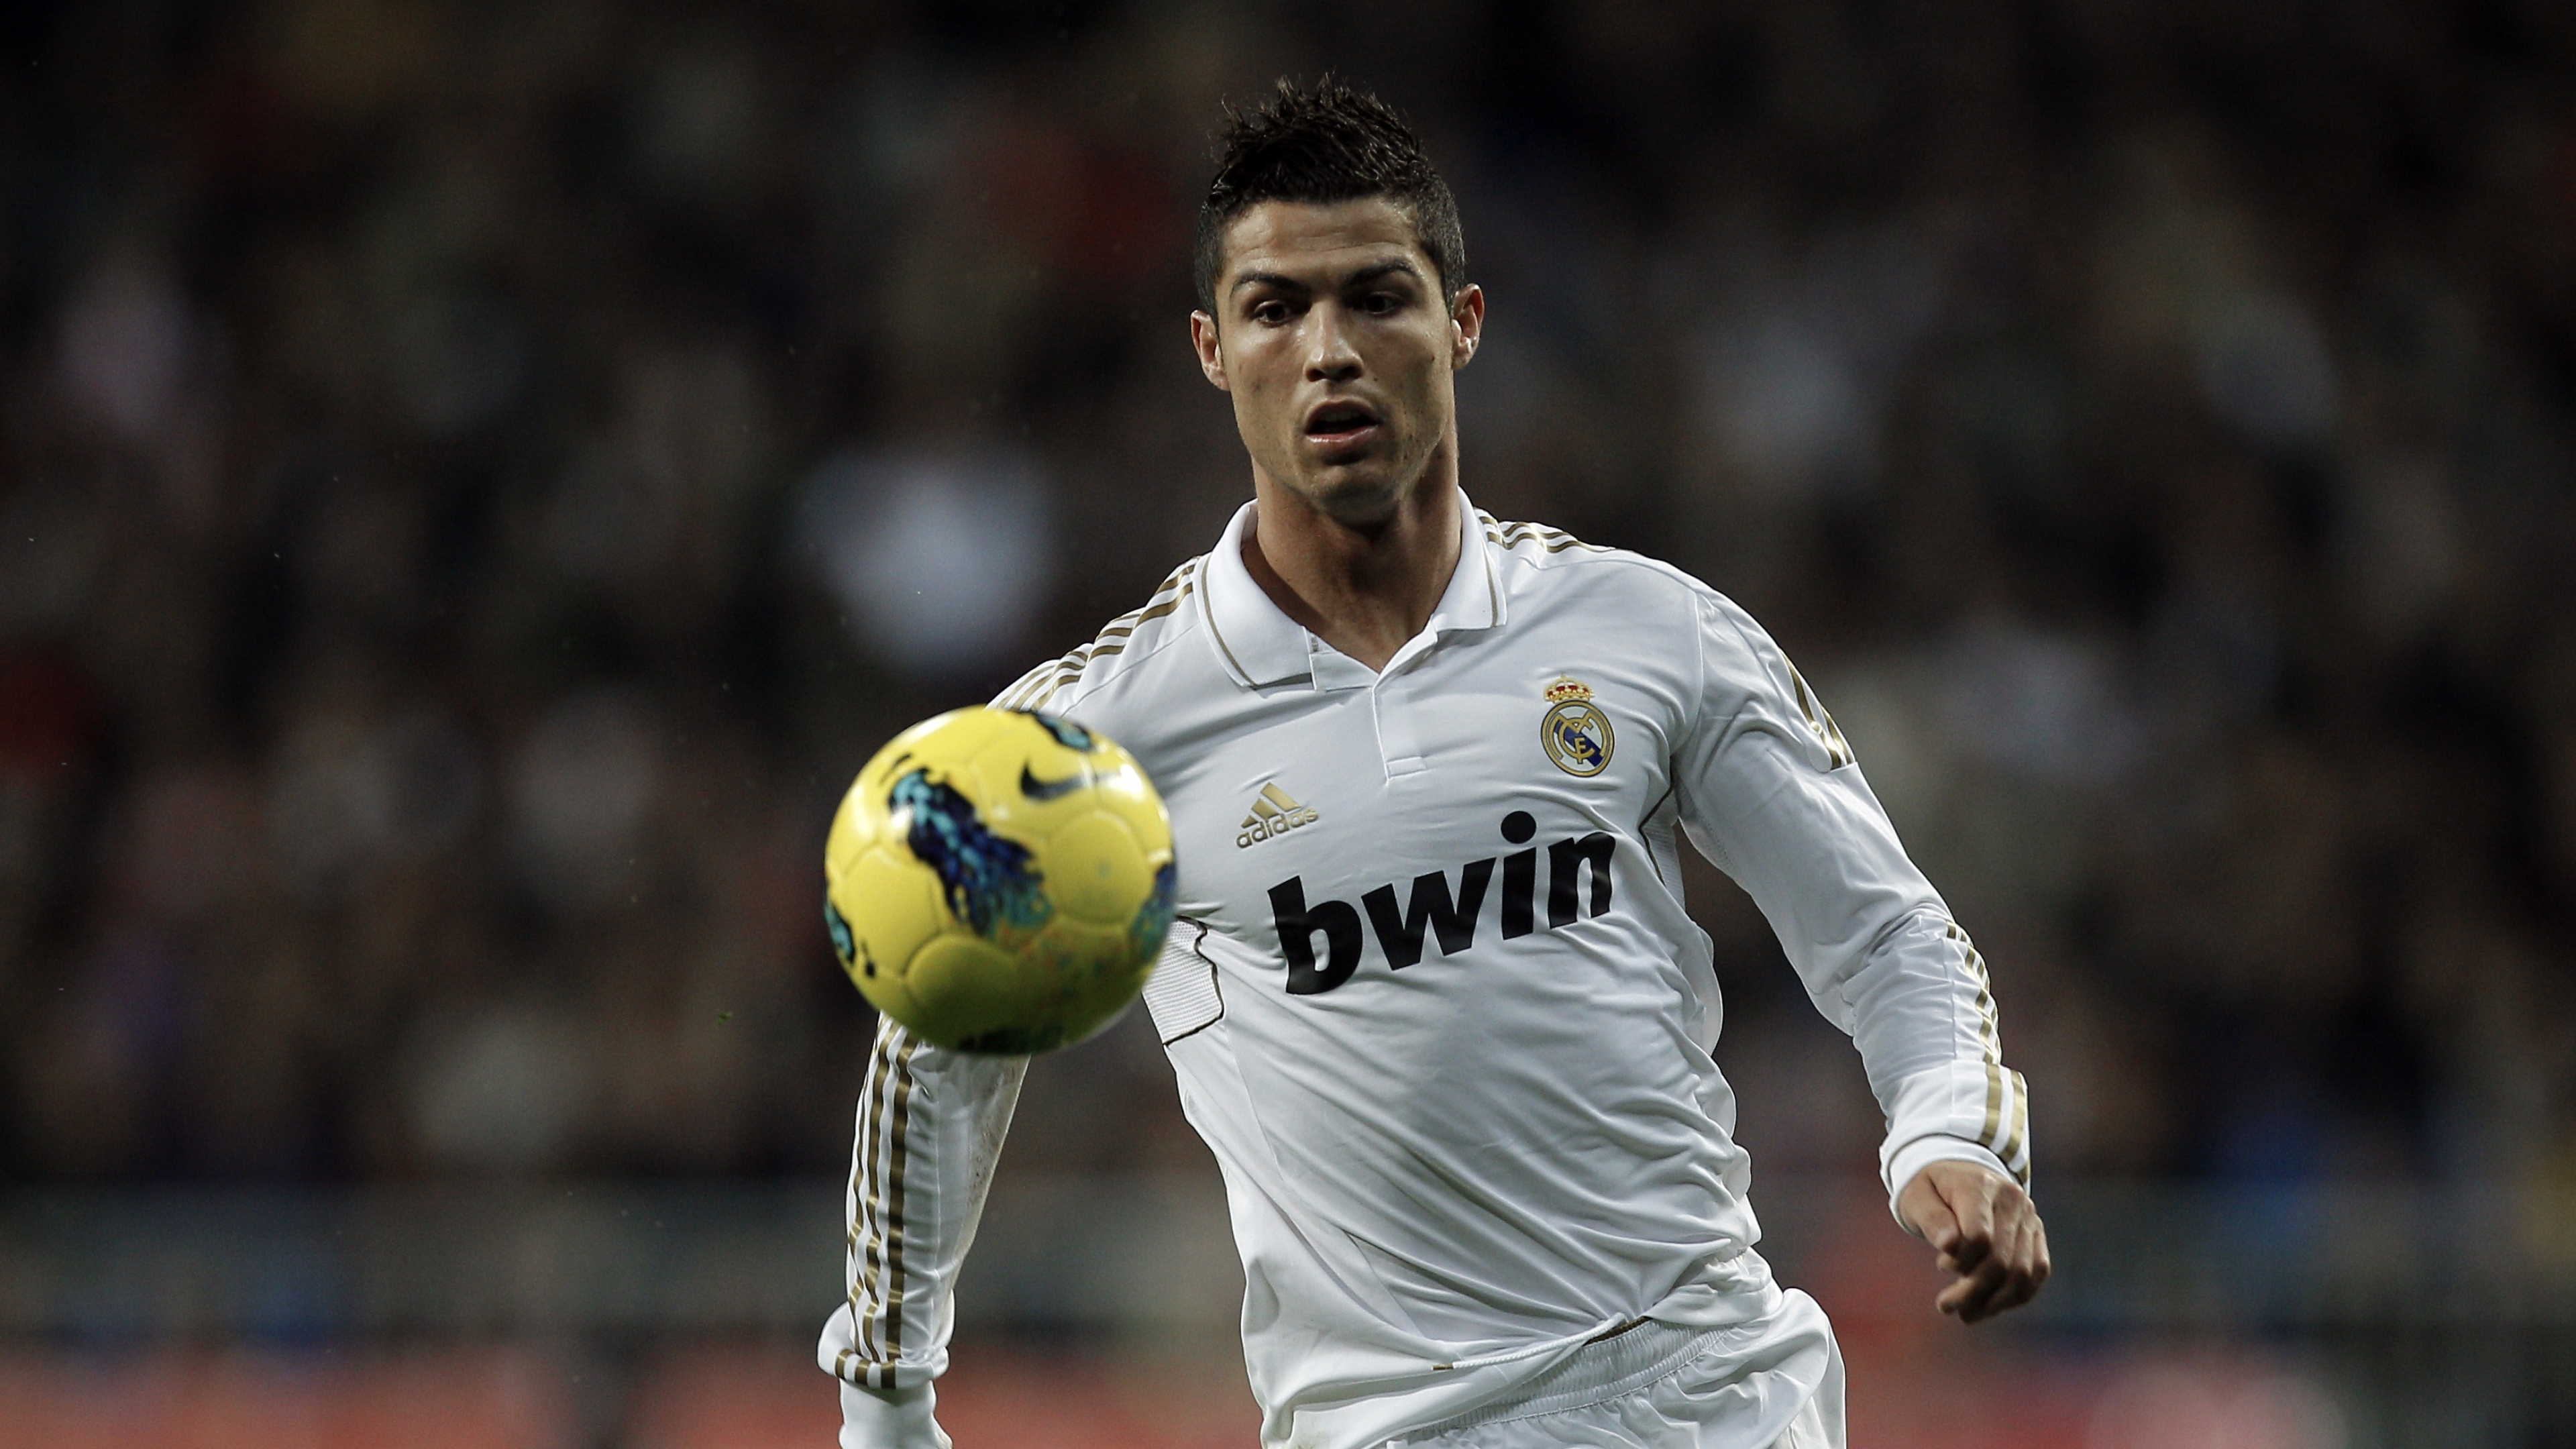 Cristiano Ronaldo Hd Free Football Background Mobile Desktop Download Wallpapers Pics